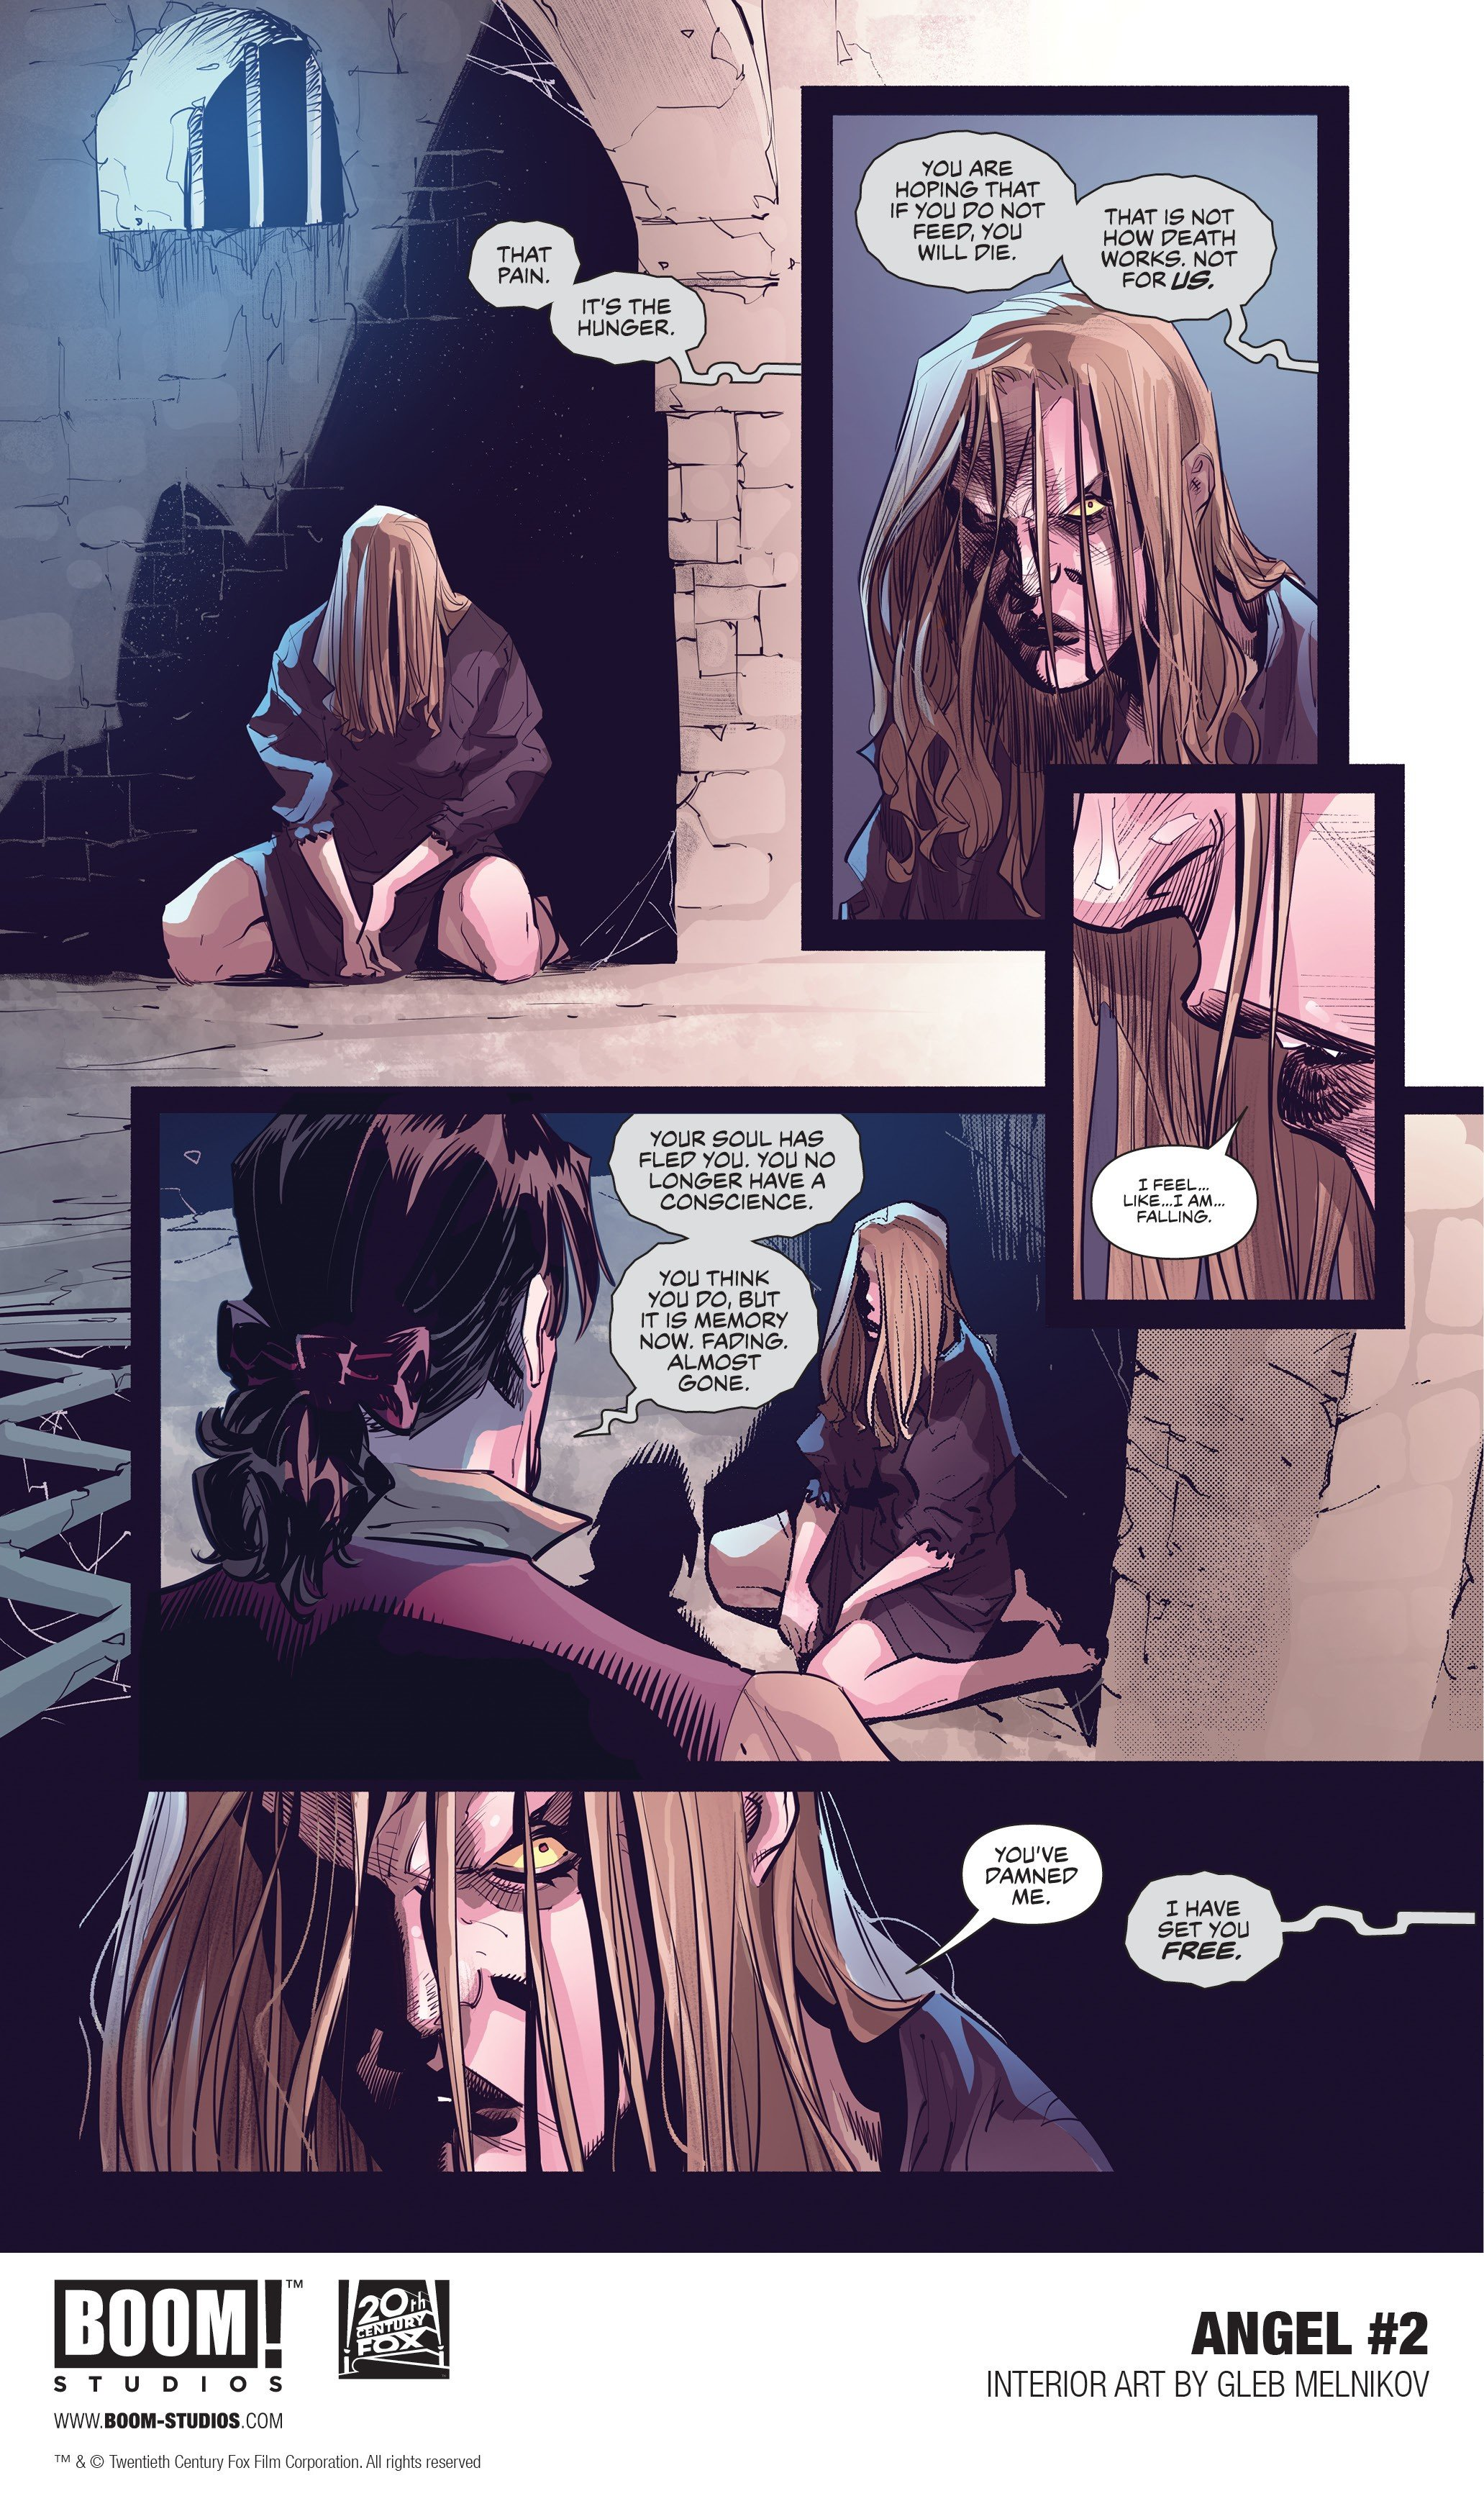 joss Whedon's ANGEL #2